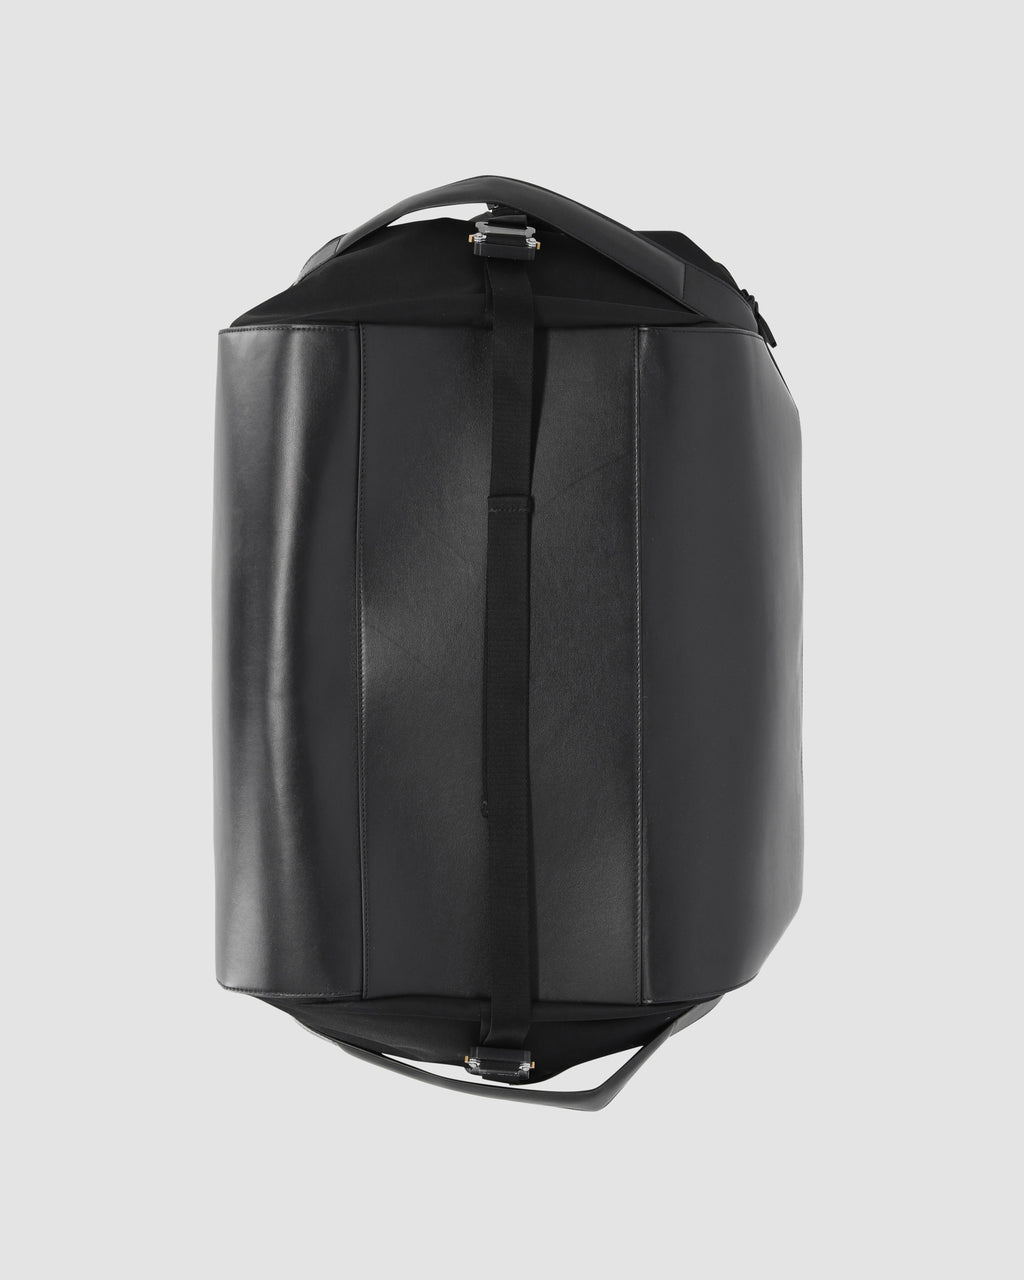 1017 ALYX 9SM | LARGE WEEK-END BAG | Bag | 40OFFF19, 50OFFF193RDMD, Accessories, Bag Online, Bags, Black, F19, Man, missing info, no description, PSFW19, Woman